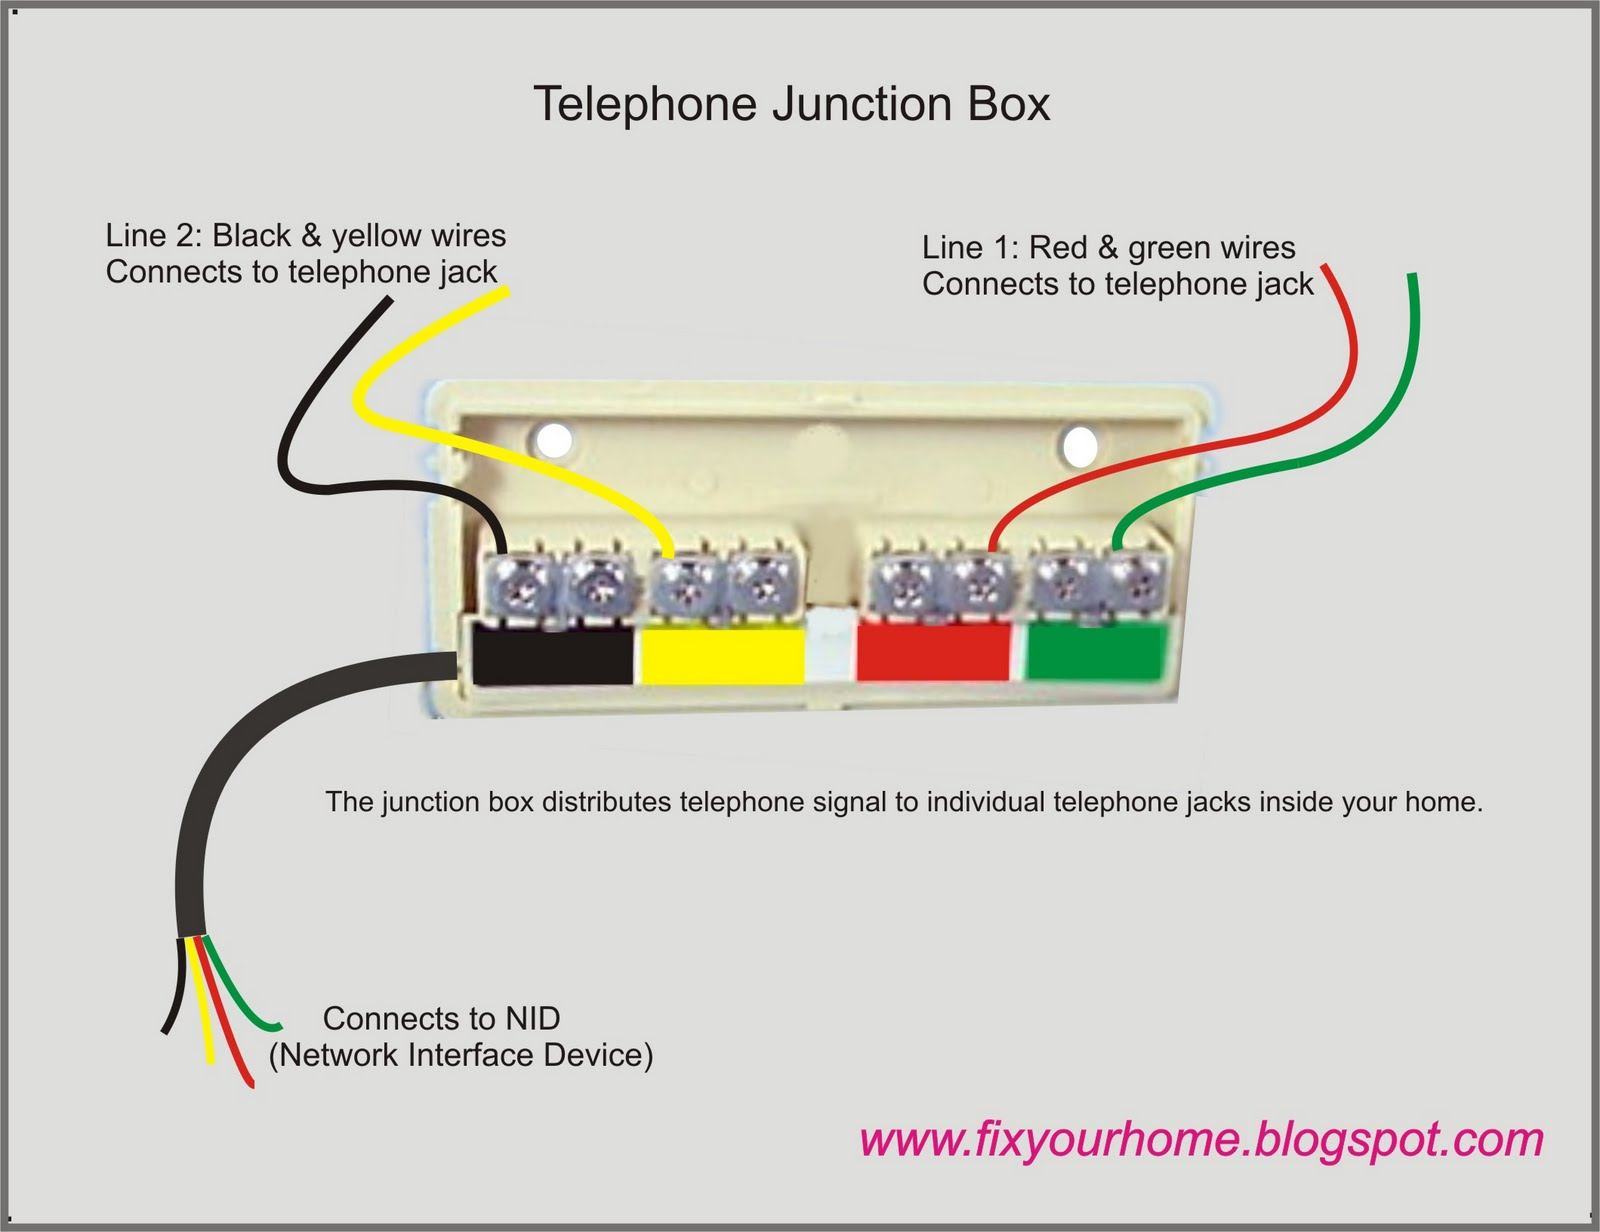 Fix Your Home: Telephone Junction Box